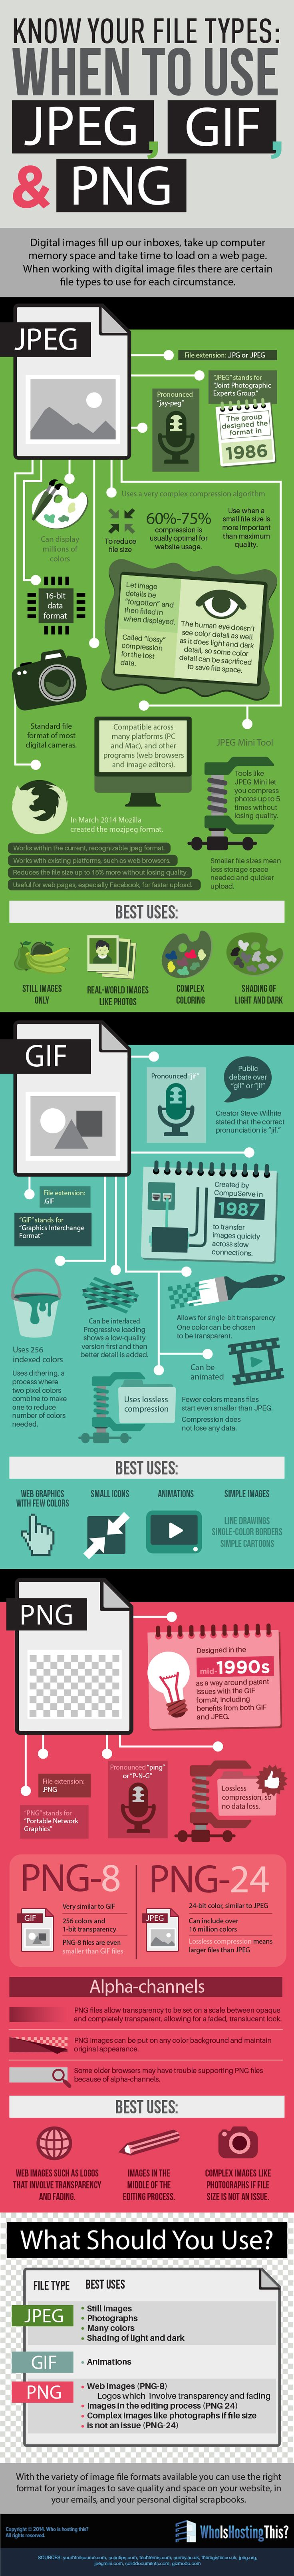 Know Your File Types  Know Your File Types and When to Use JPEG, GIF, and PNG (infographic)